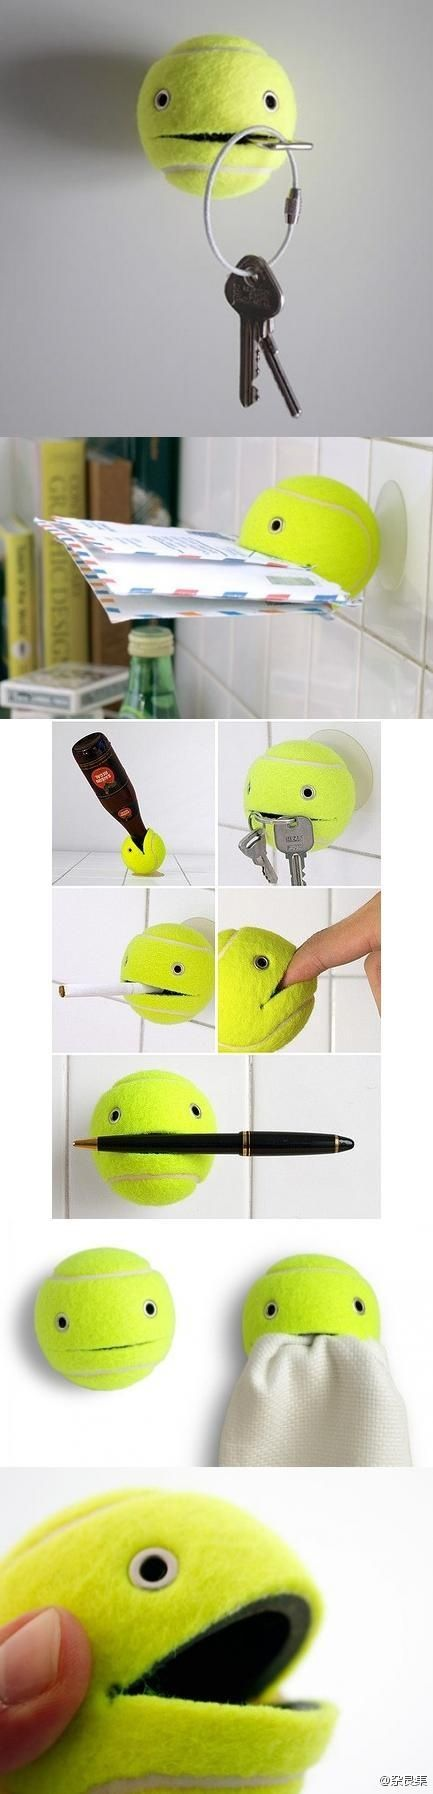 DIY – Tennis Ball